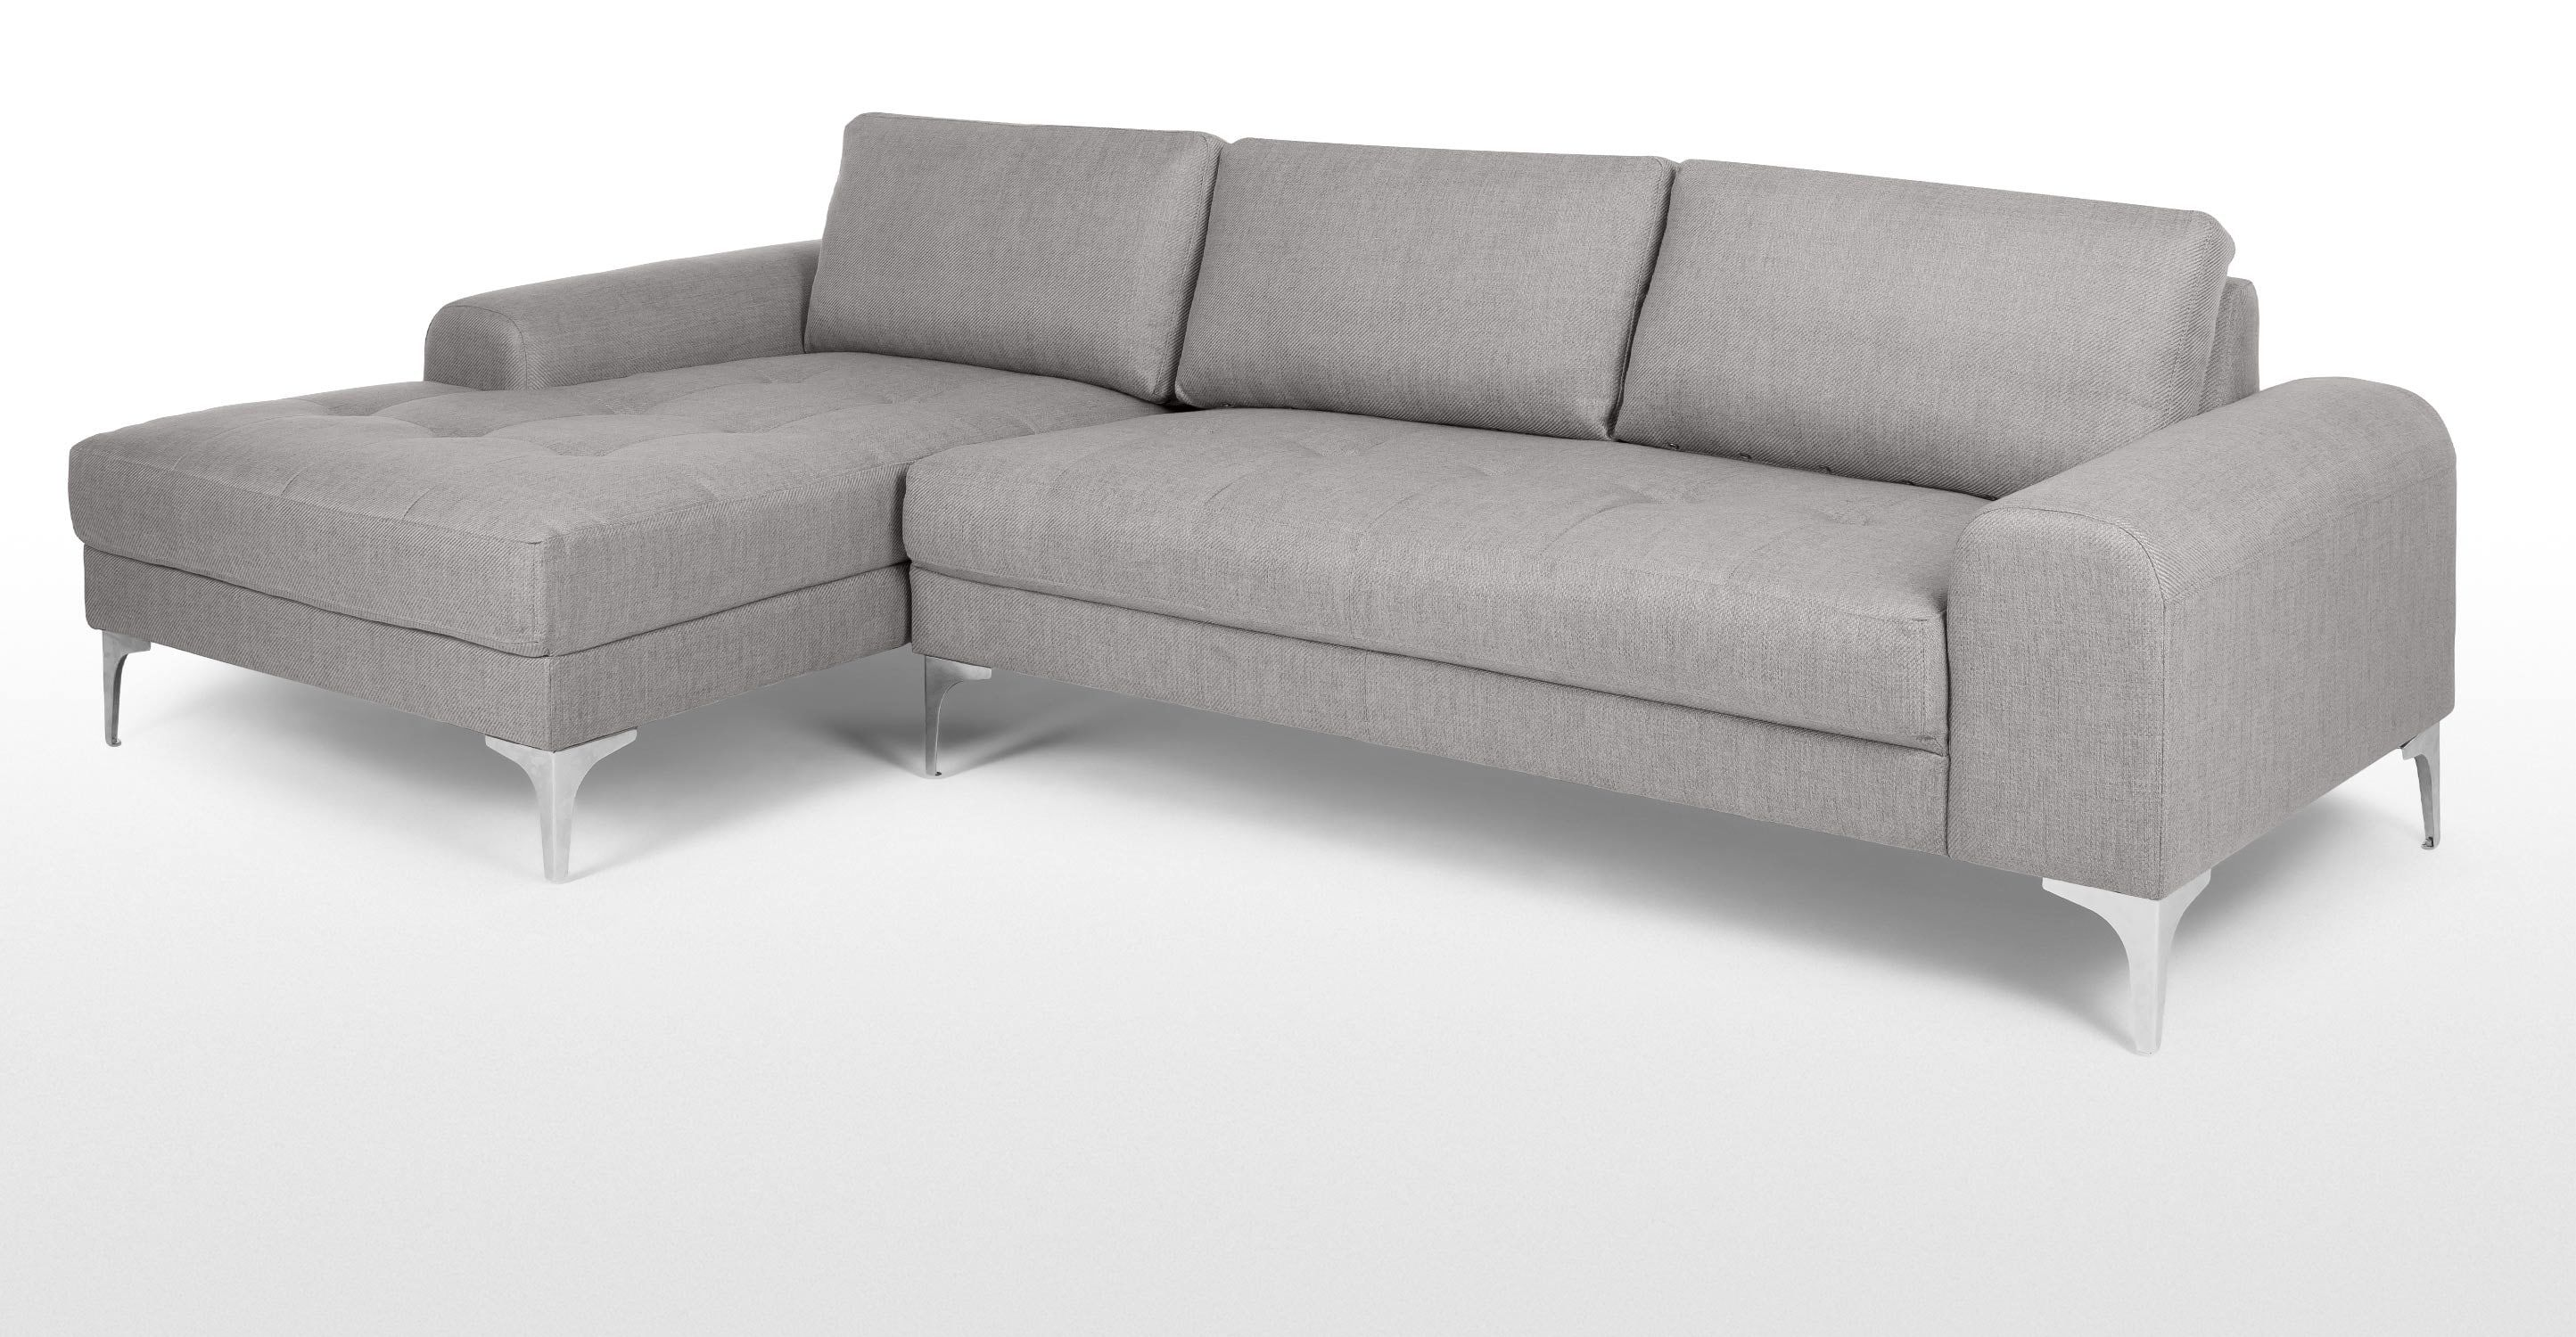 Add Contemporary Italian Style To The Living Room With A Vittorio Left Hand Facing Corner Sofa